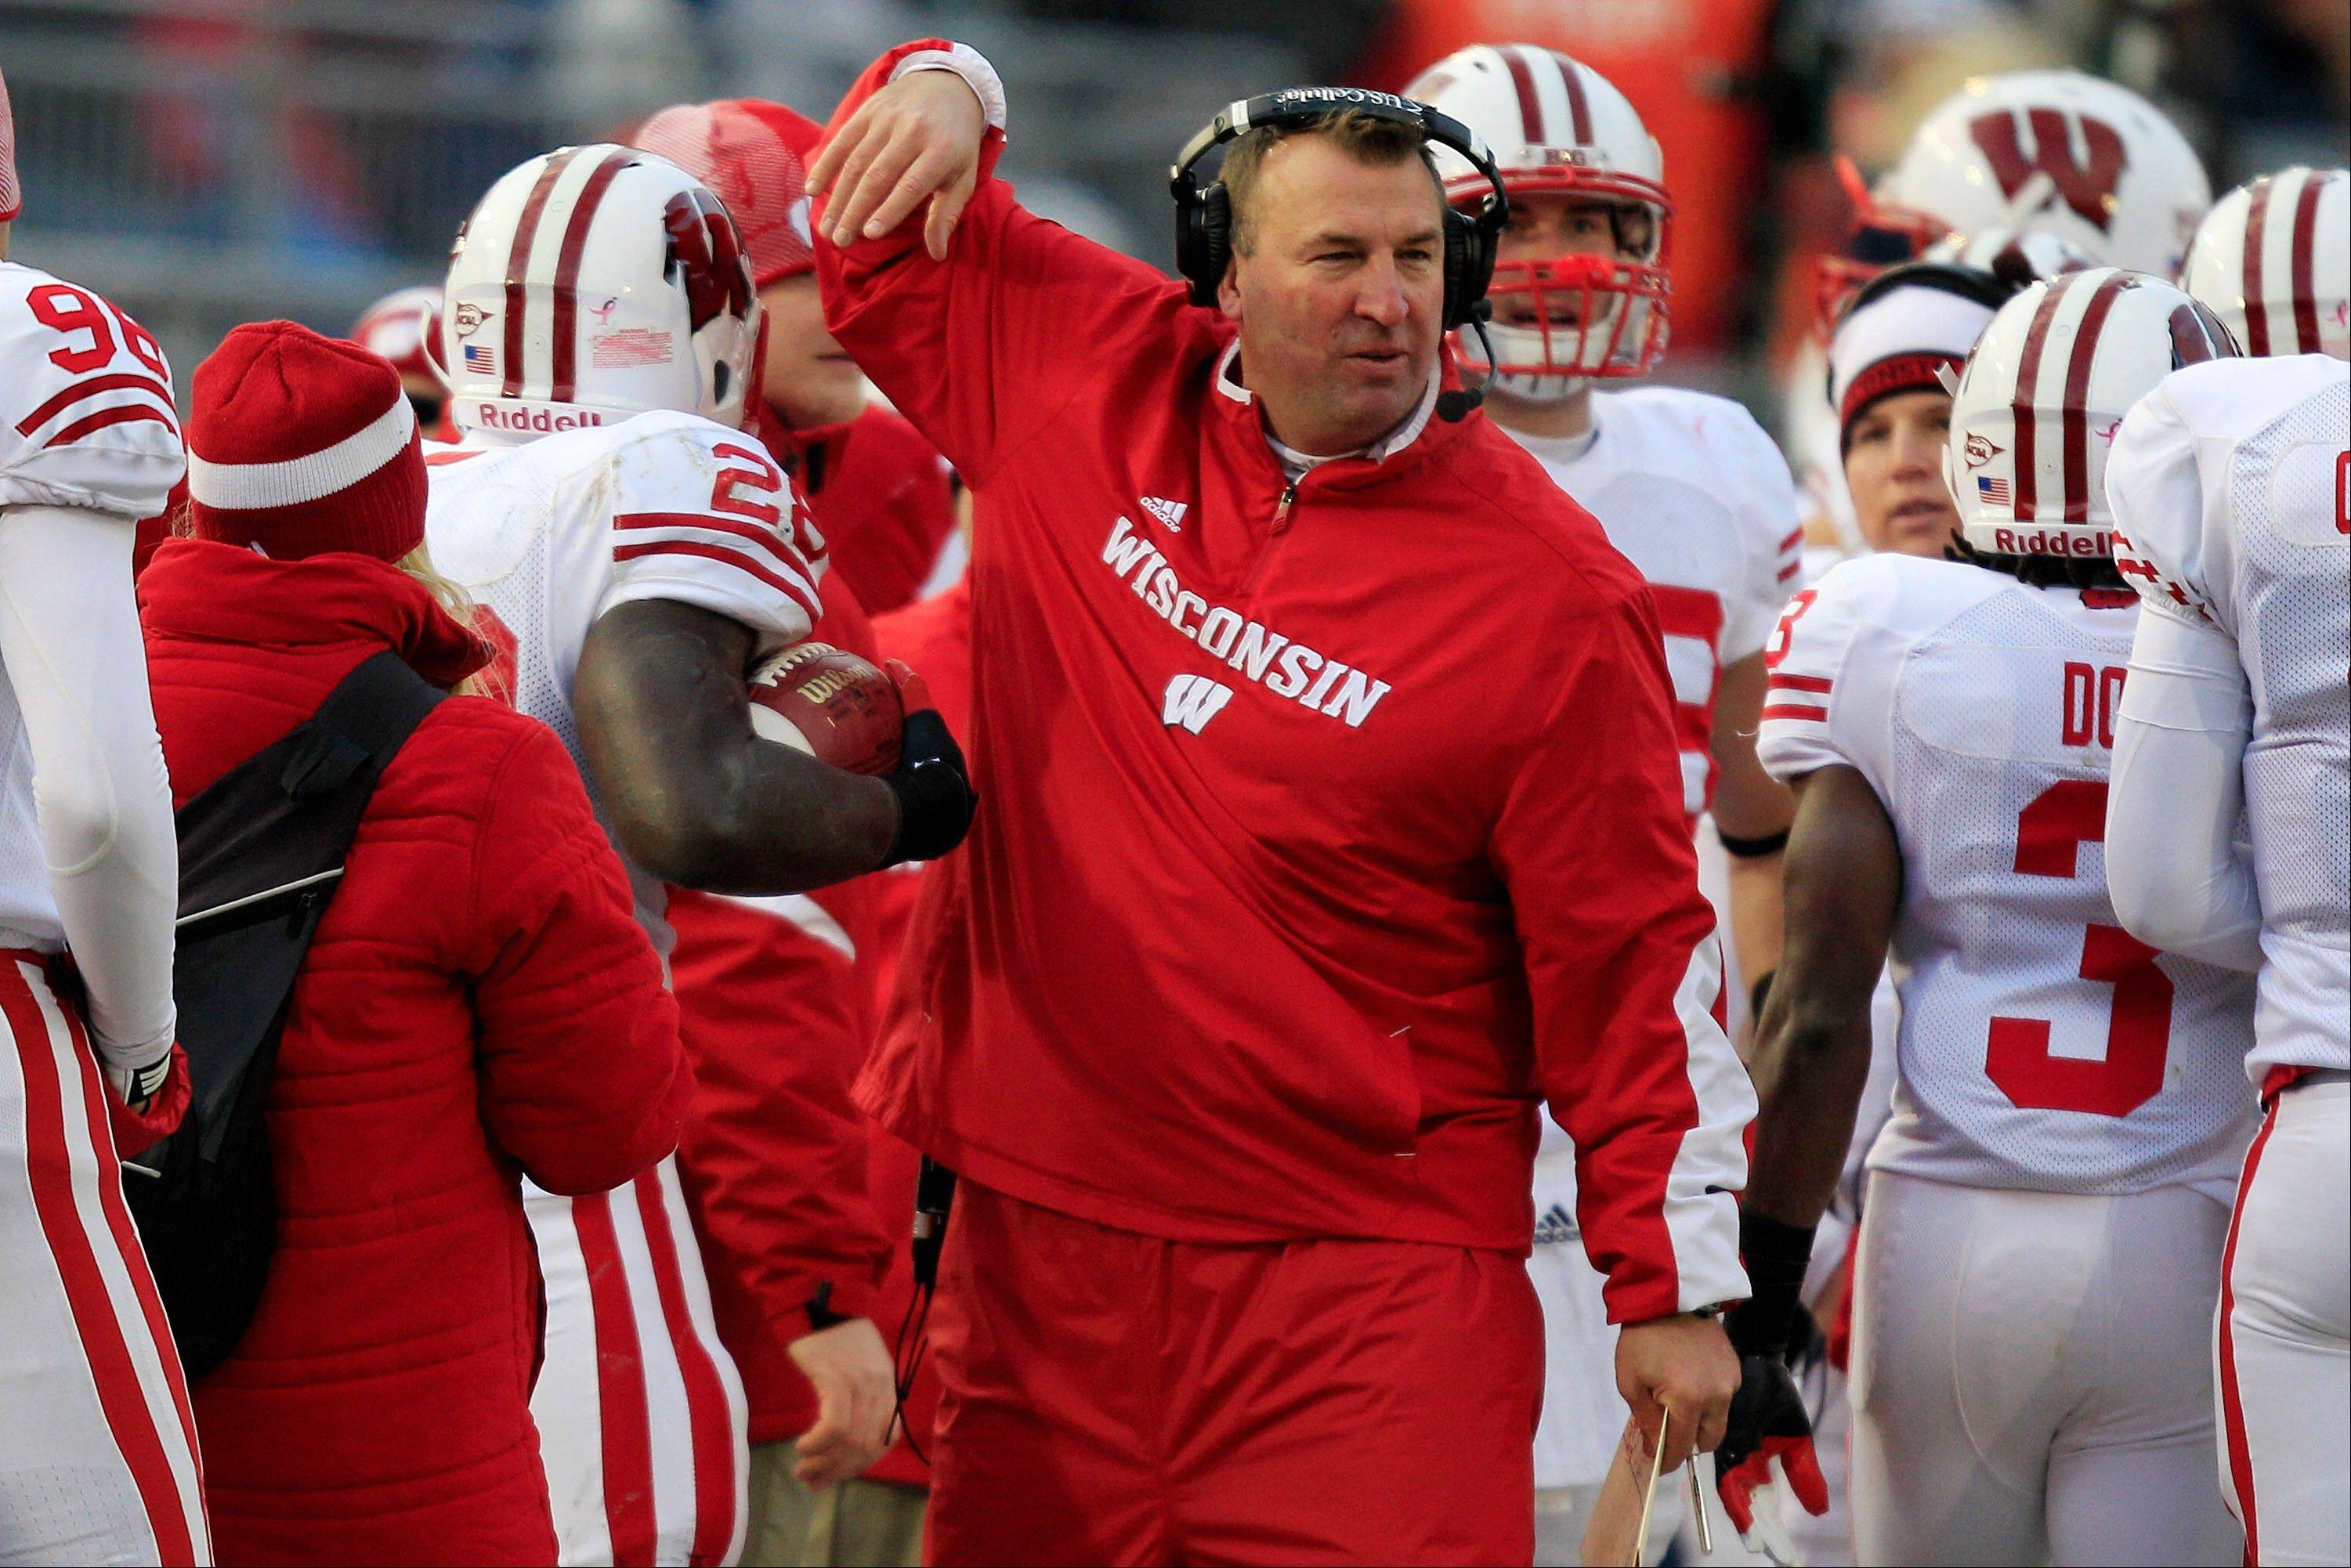 Wisconsin head coach Bret Bielema, center, celebrates with Wisconsin running back Montee Ball after a touchdown run during the first quarter of Saturday�s at Penn State. Wisconsin lost in overtime.